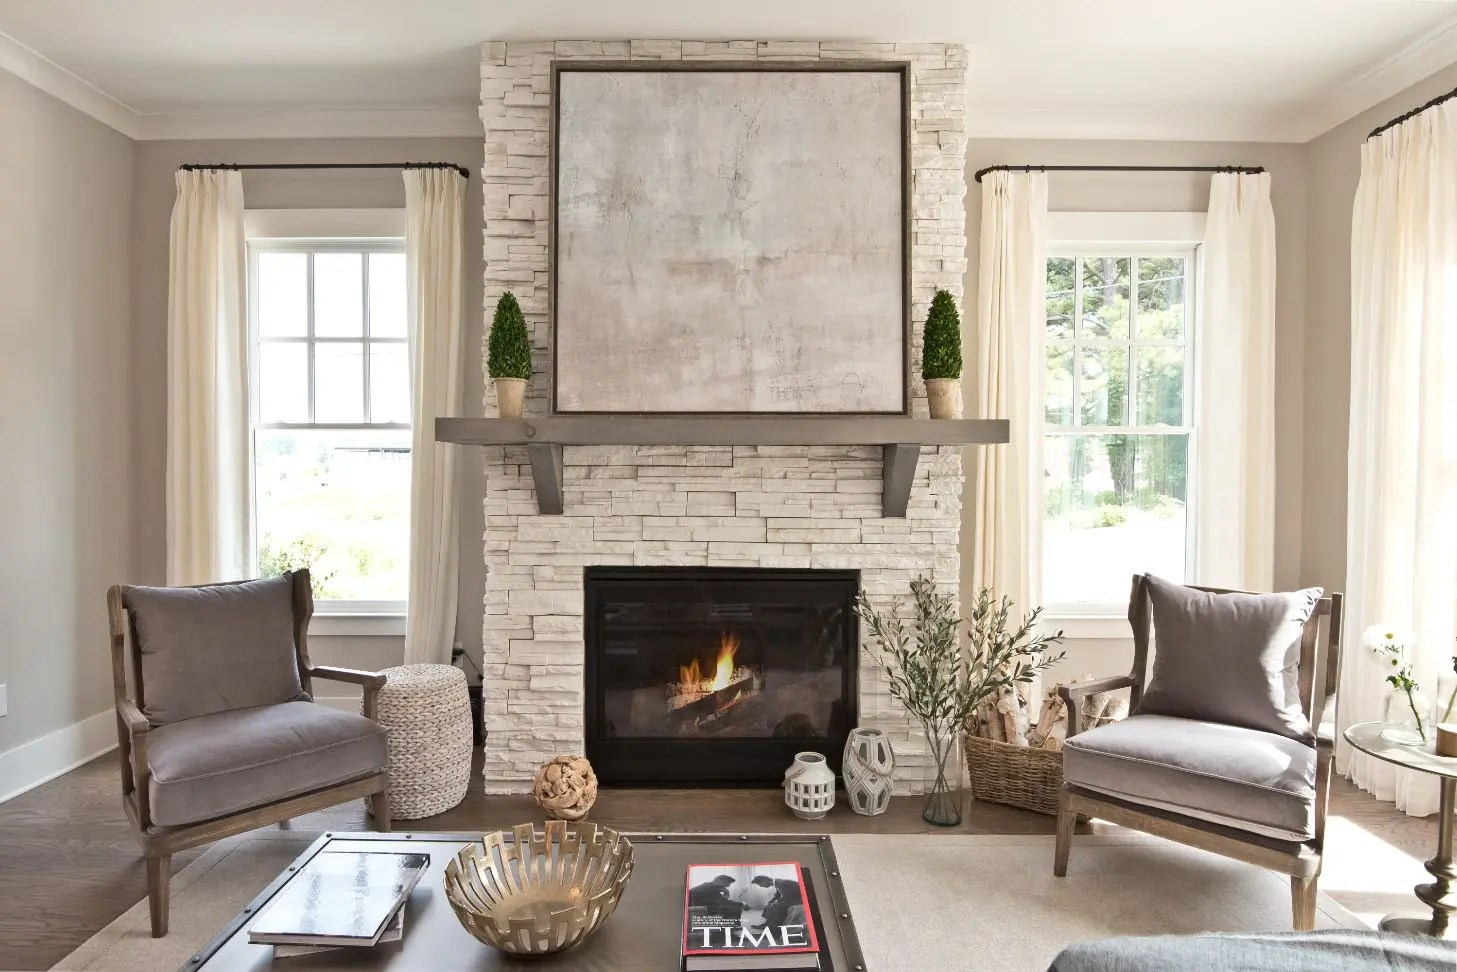 Decorations For Fireplaces Warm Your Home With Fireplace Decor Brock Built